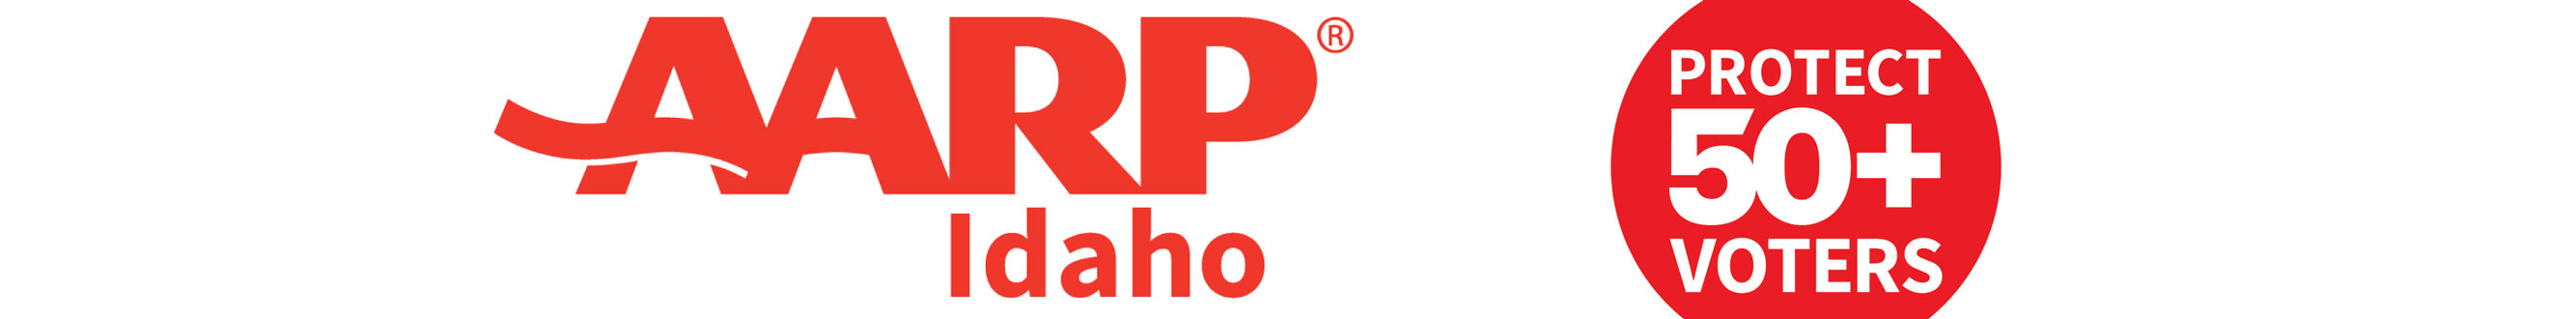 AARP of Idaho, project 50+ voters